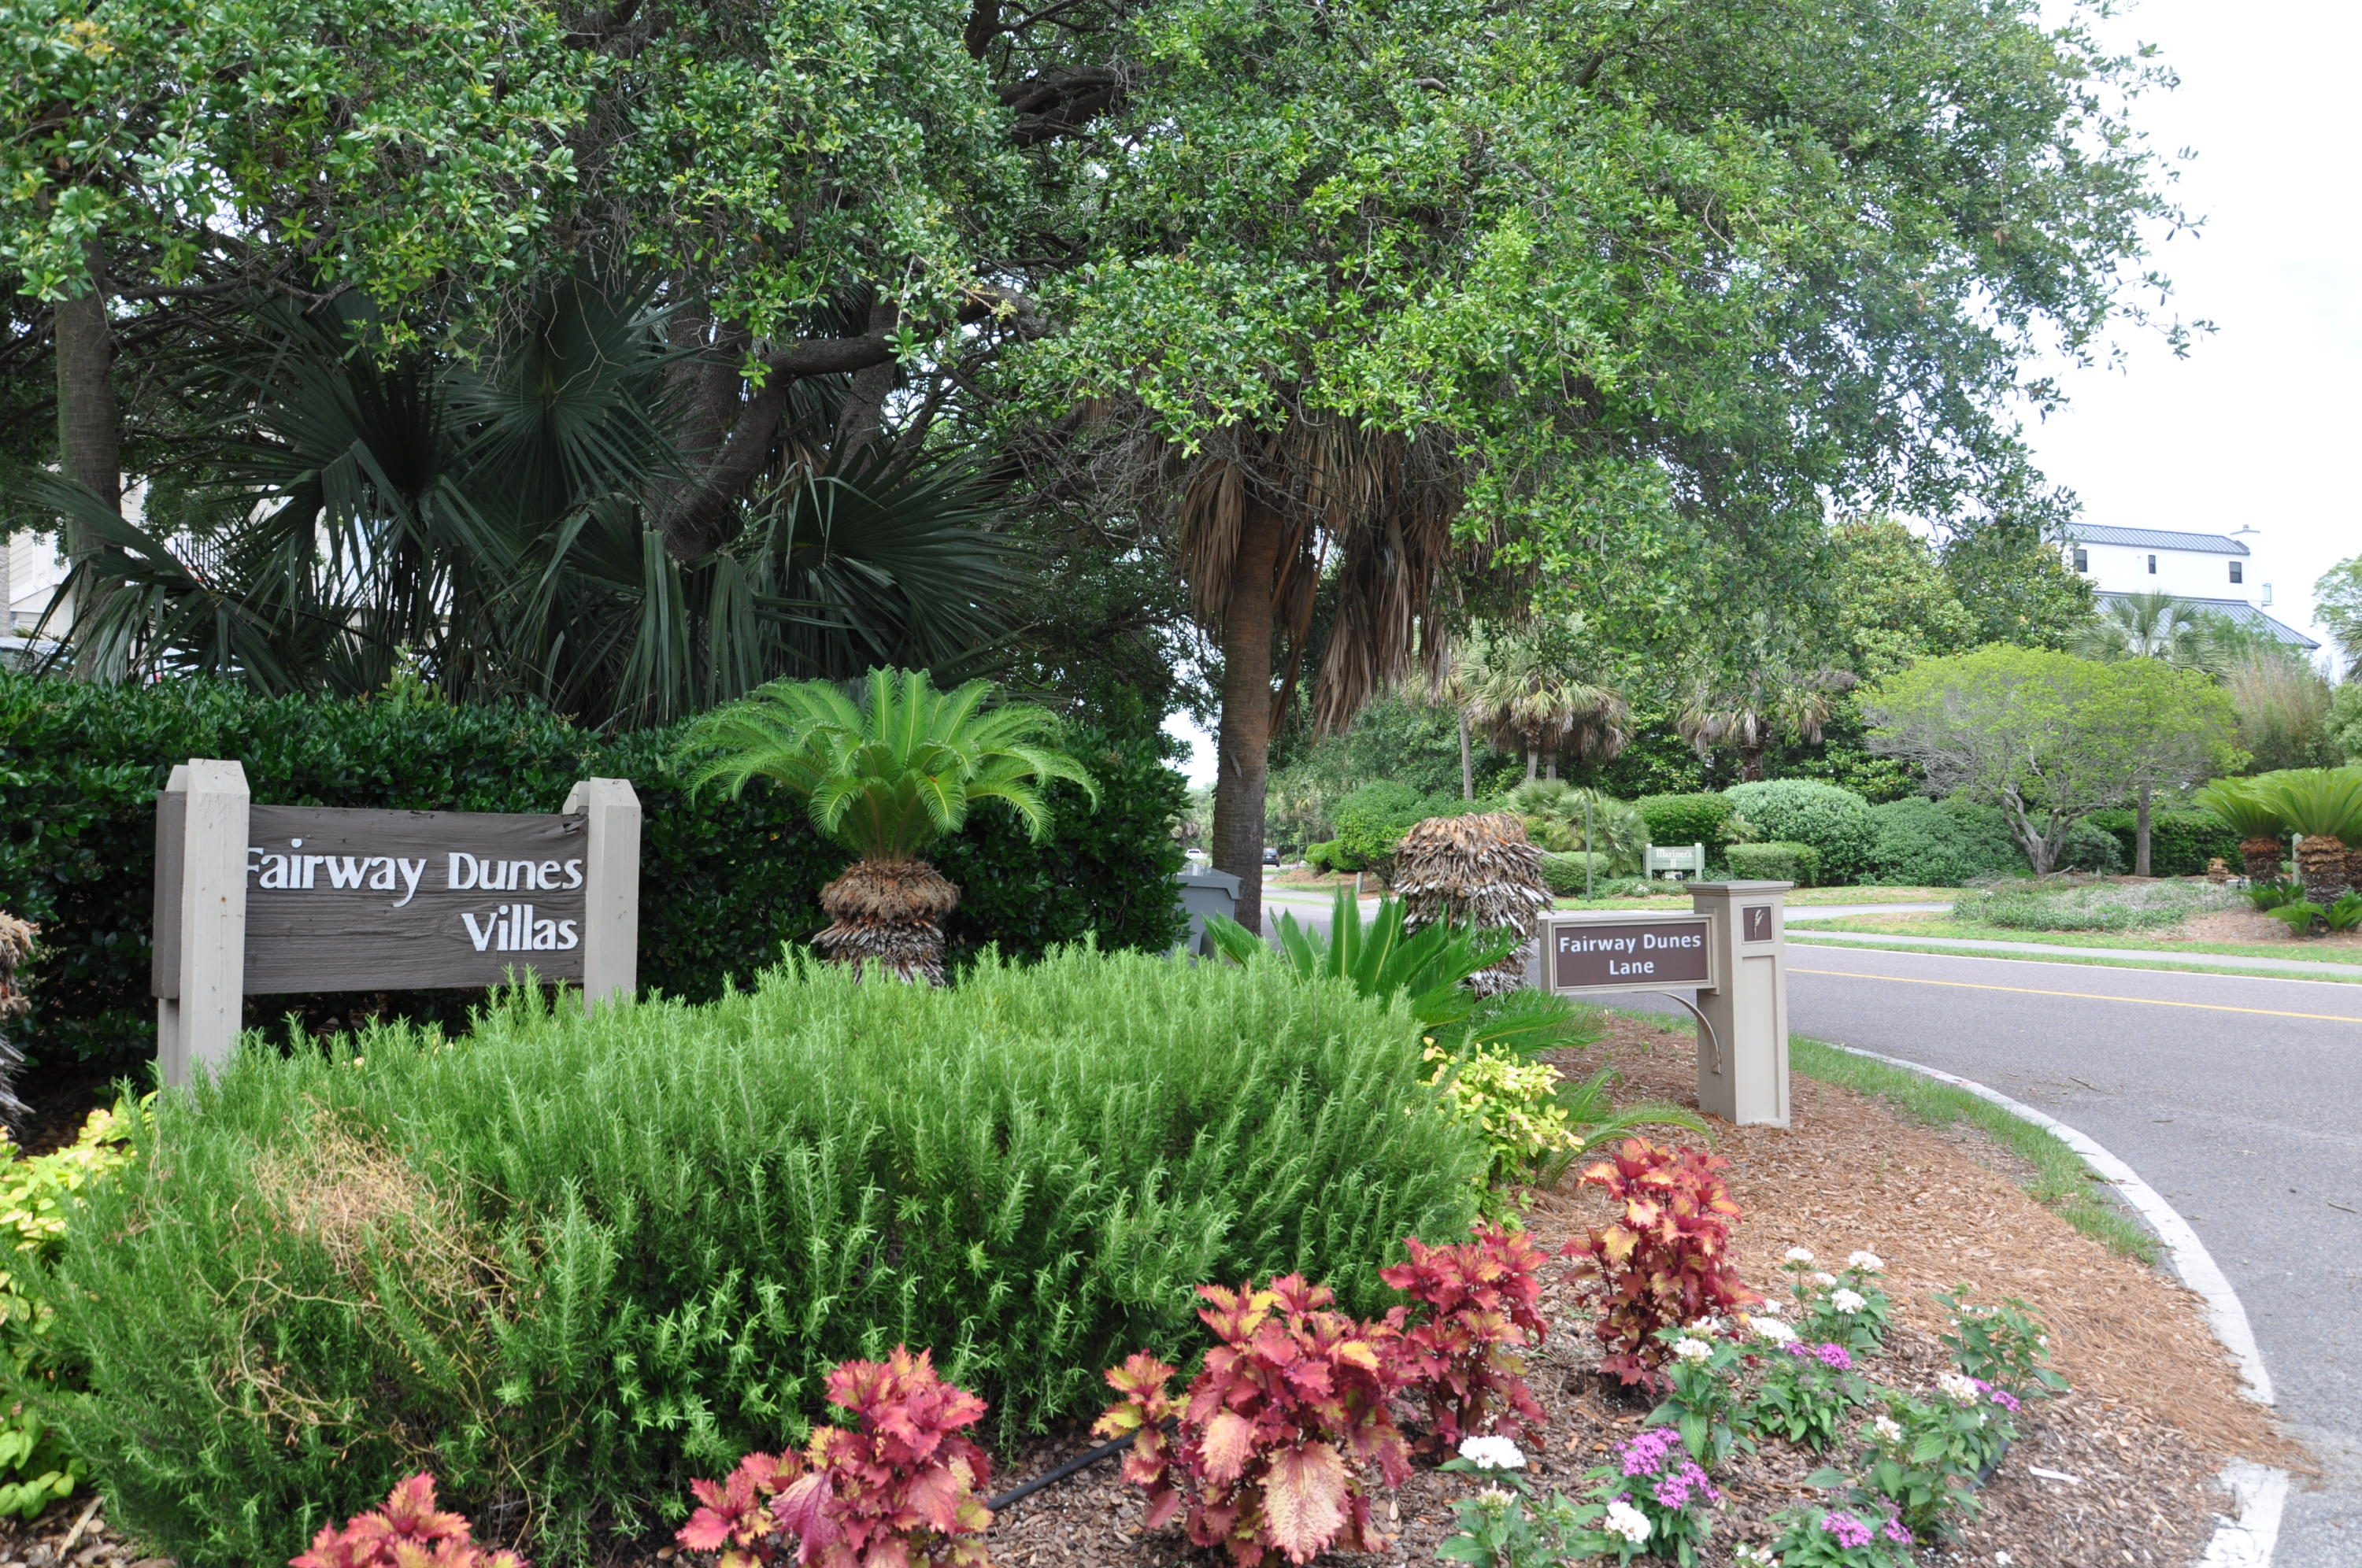 Fairway Villas Homes For Sale - 25 Fairway Dunes (1/6 Share), Isle of Palms, SC - 25